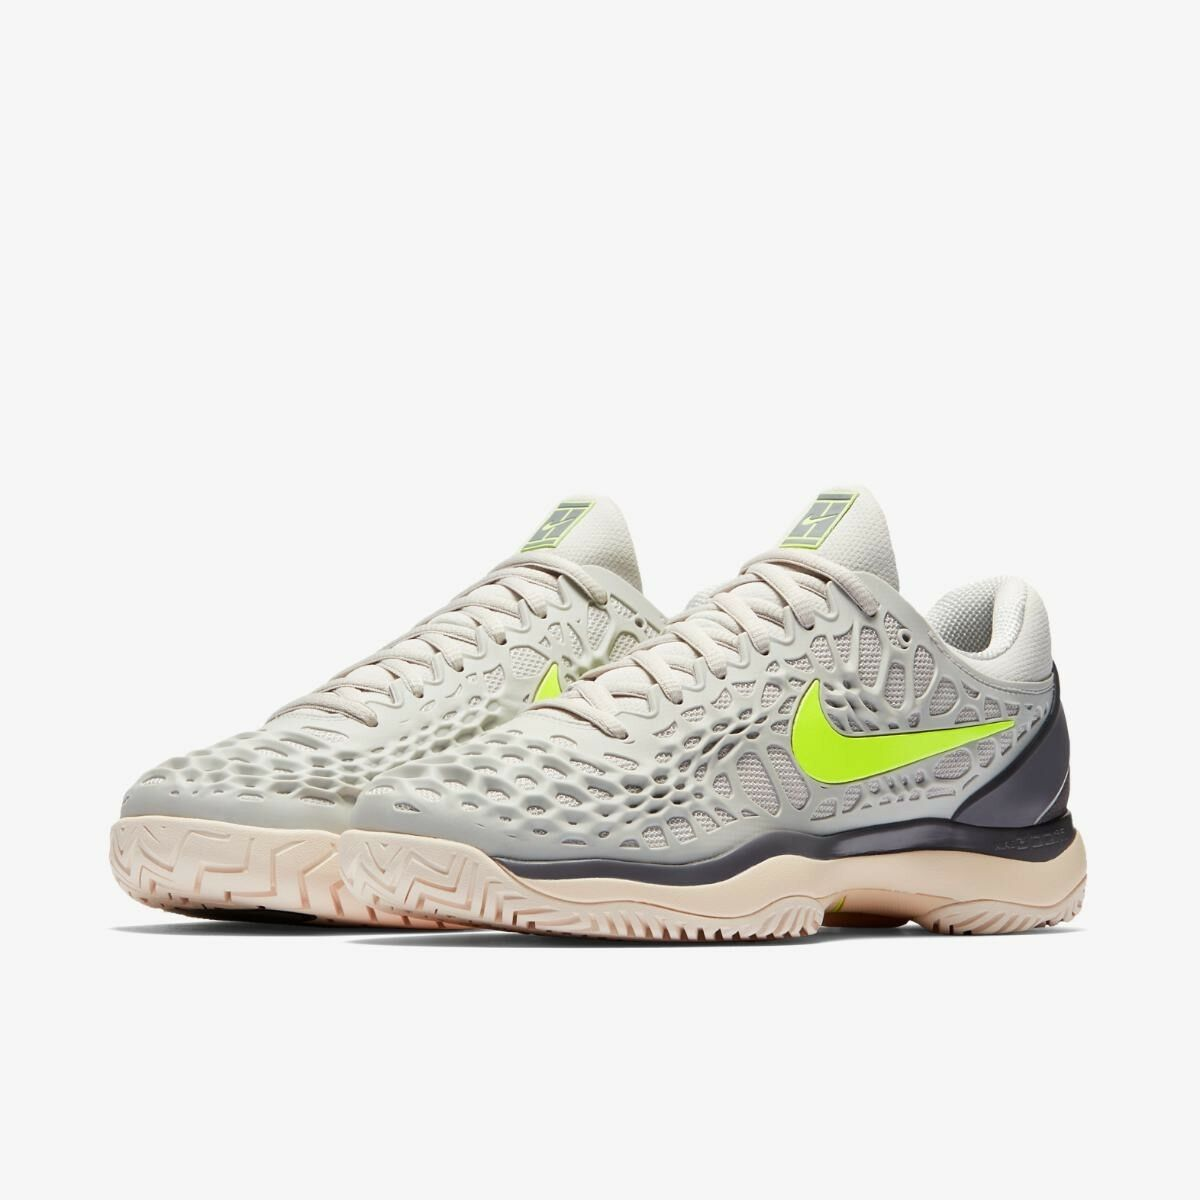 New Nike Air Zoom Cage 3 3 3 SZ 8 HC Tennis Shoes Vast Grey